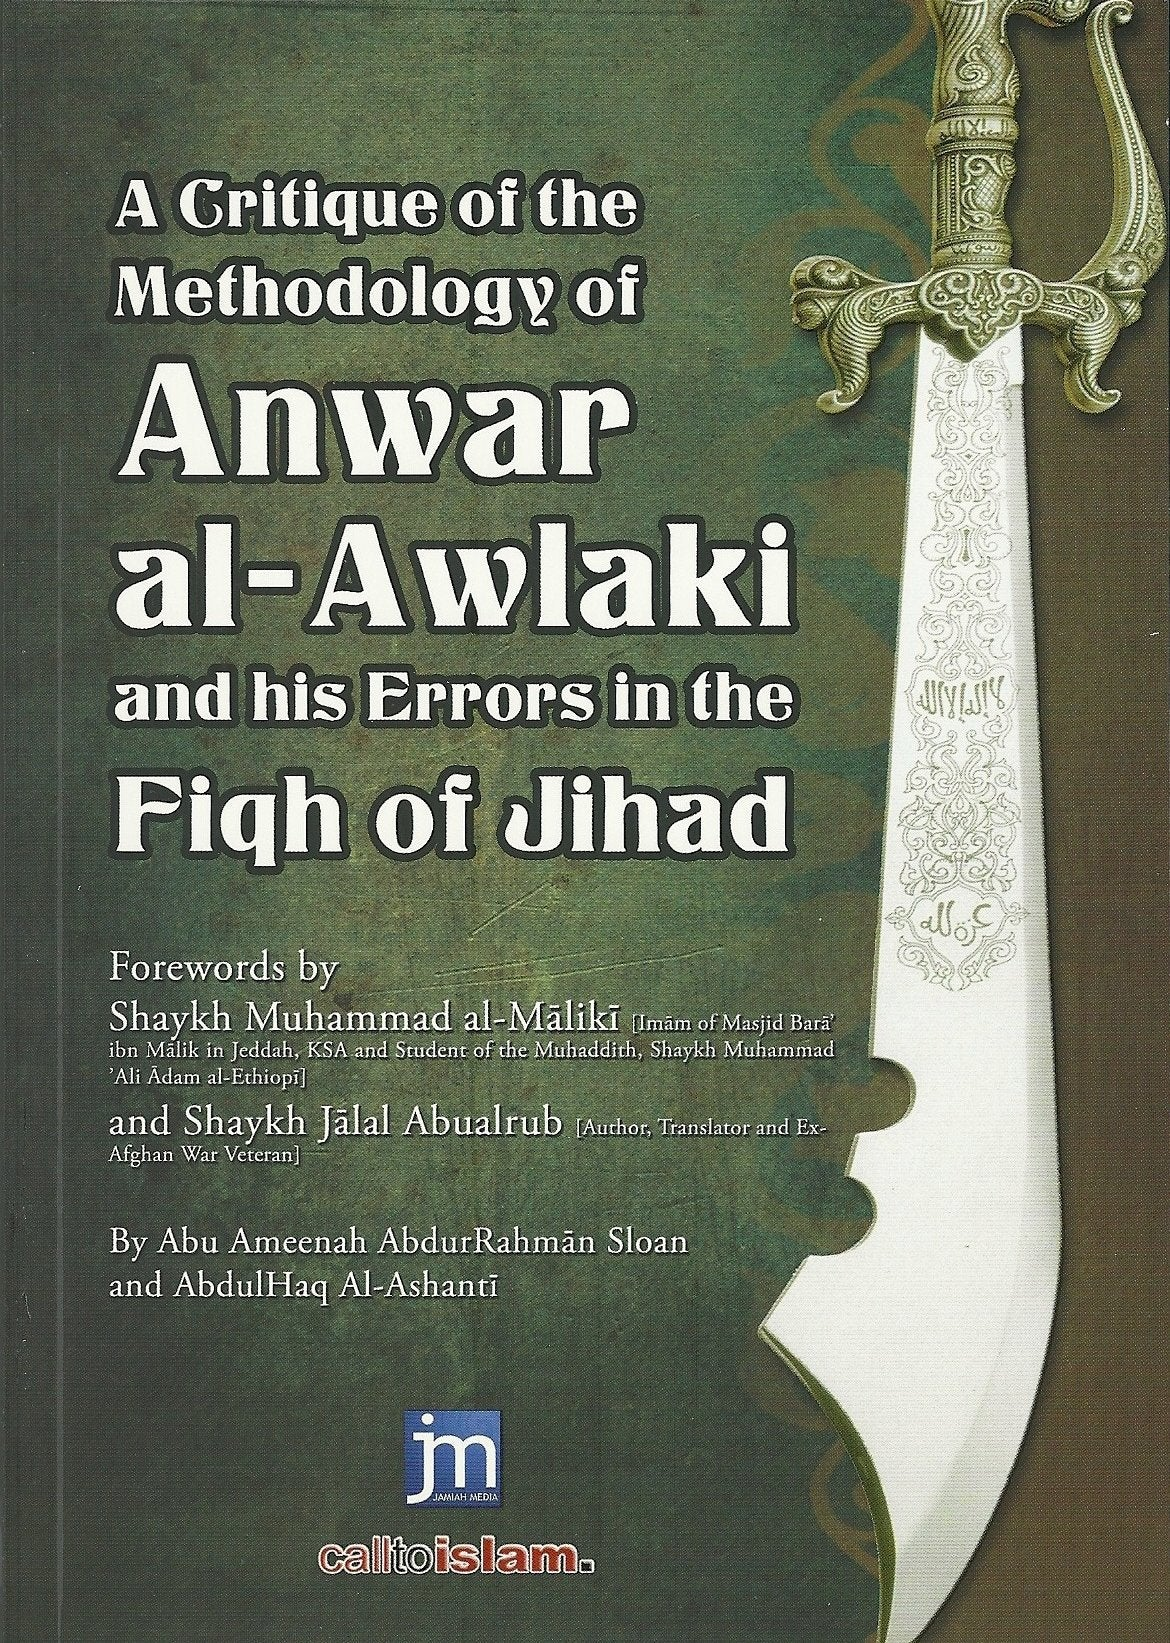 Image of A Critique of the Methodology of Anwar al-Awlaki and his Errors in the Fiqh of Jihad